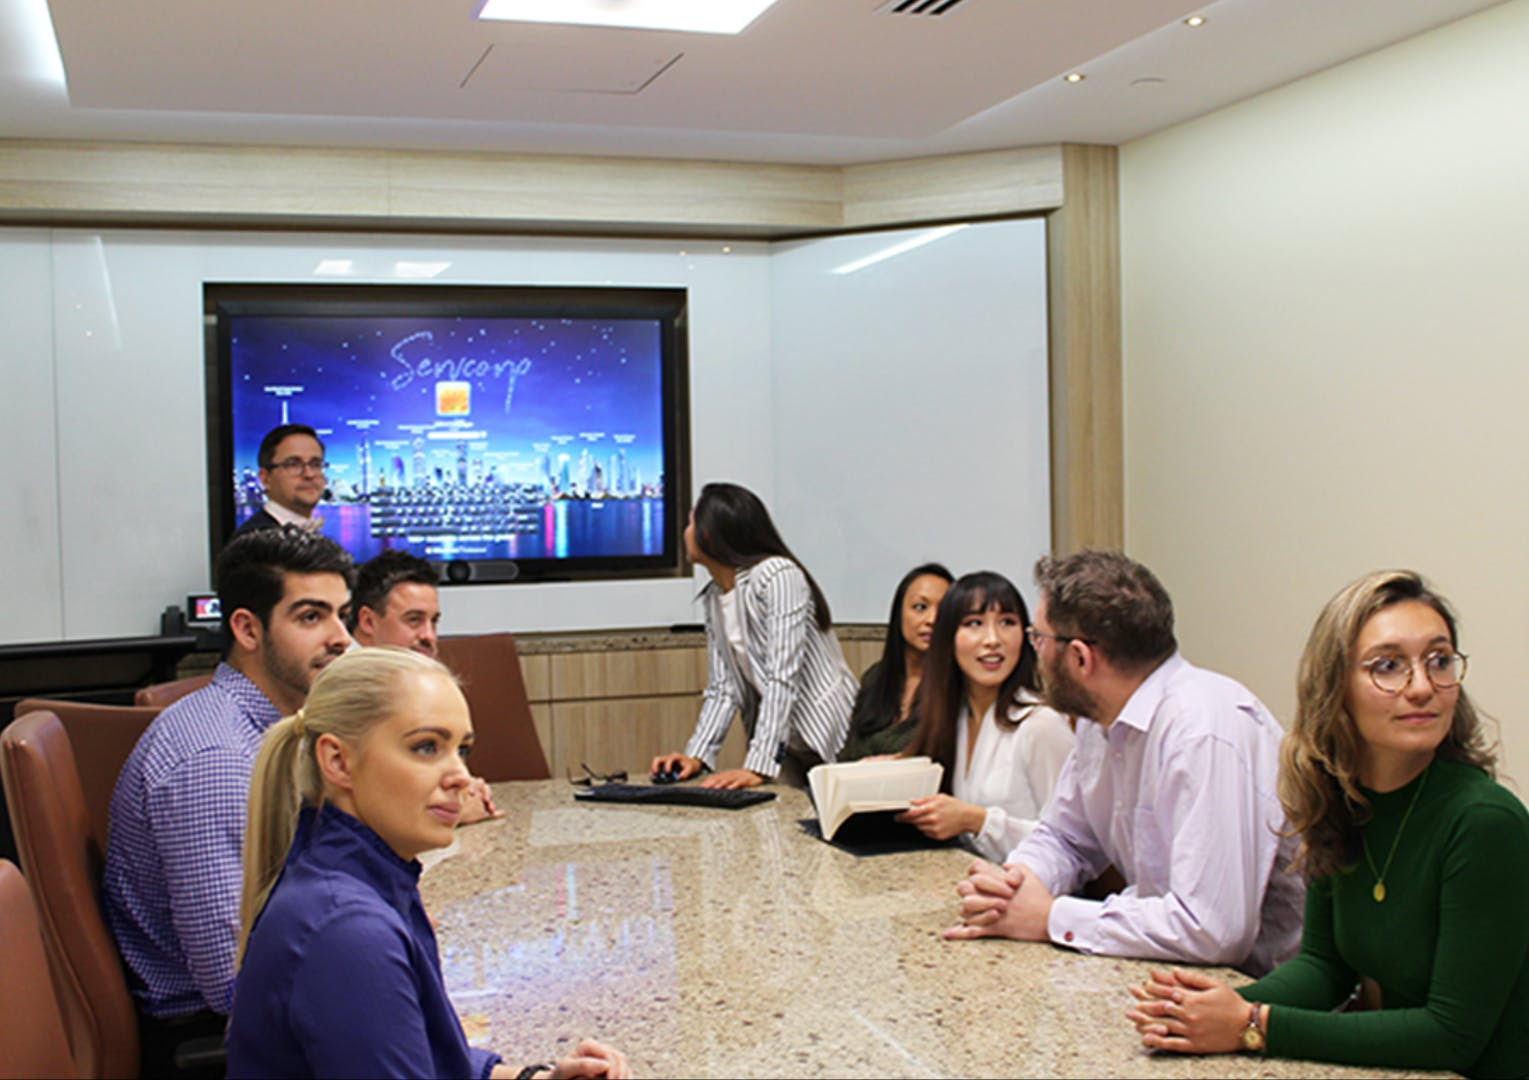 Day suite 2, meeting room at Westpac House, image 1